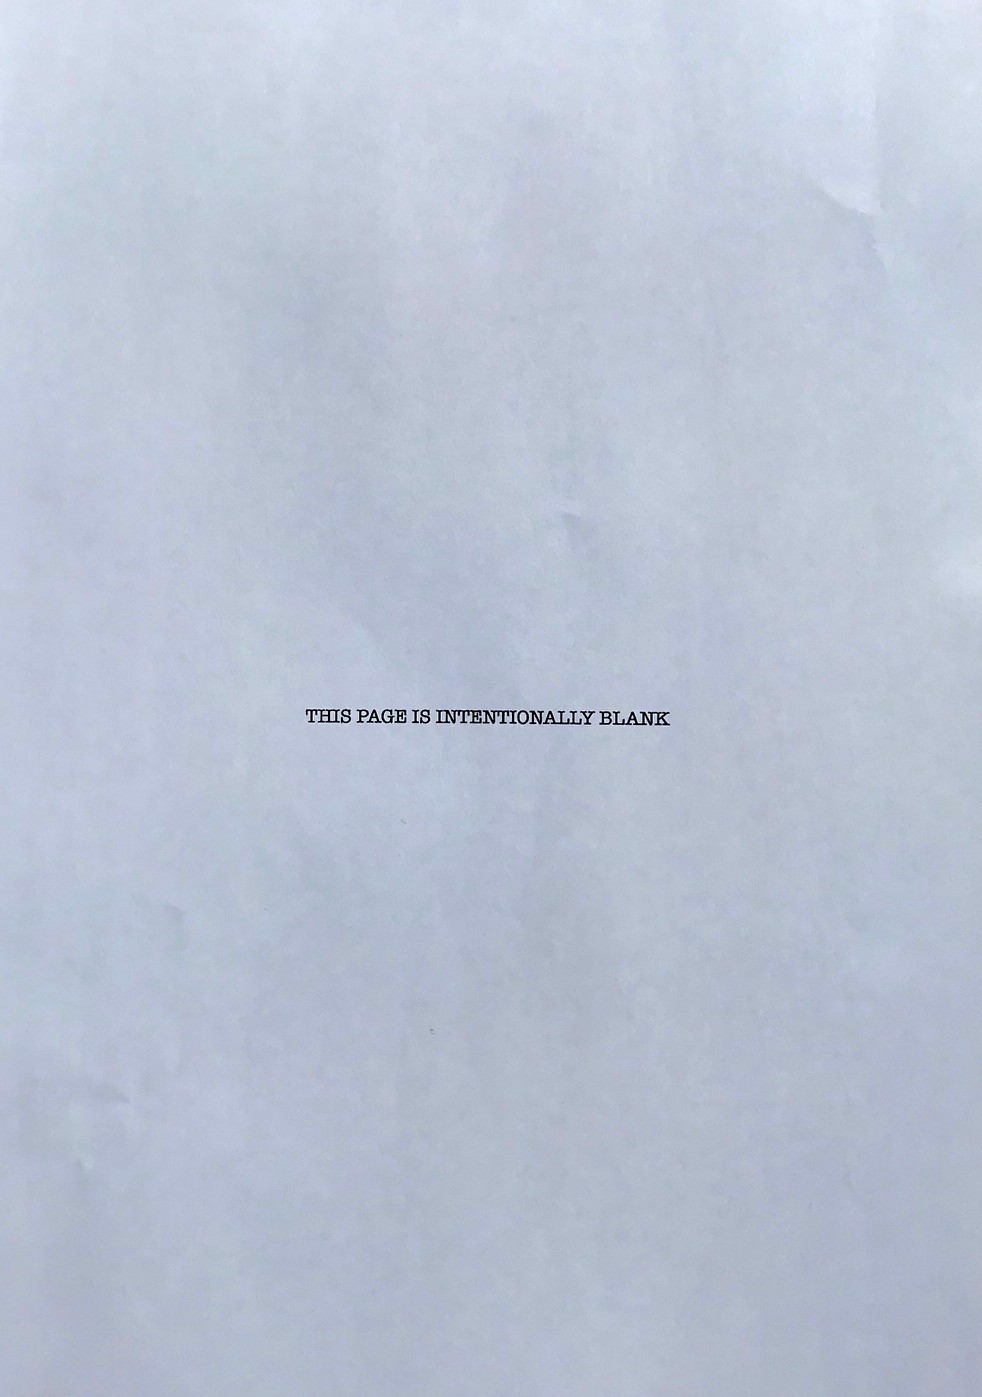 Intentionally Blank Page